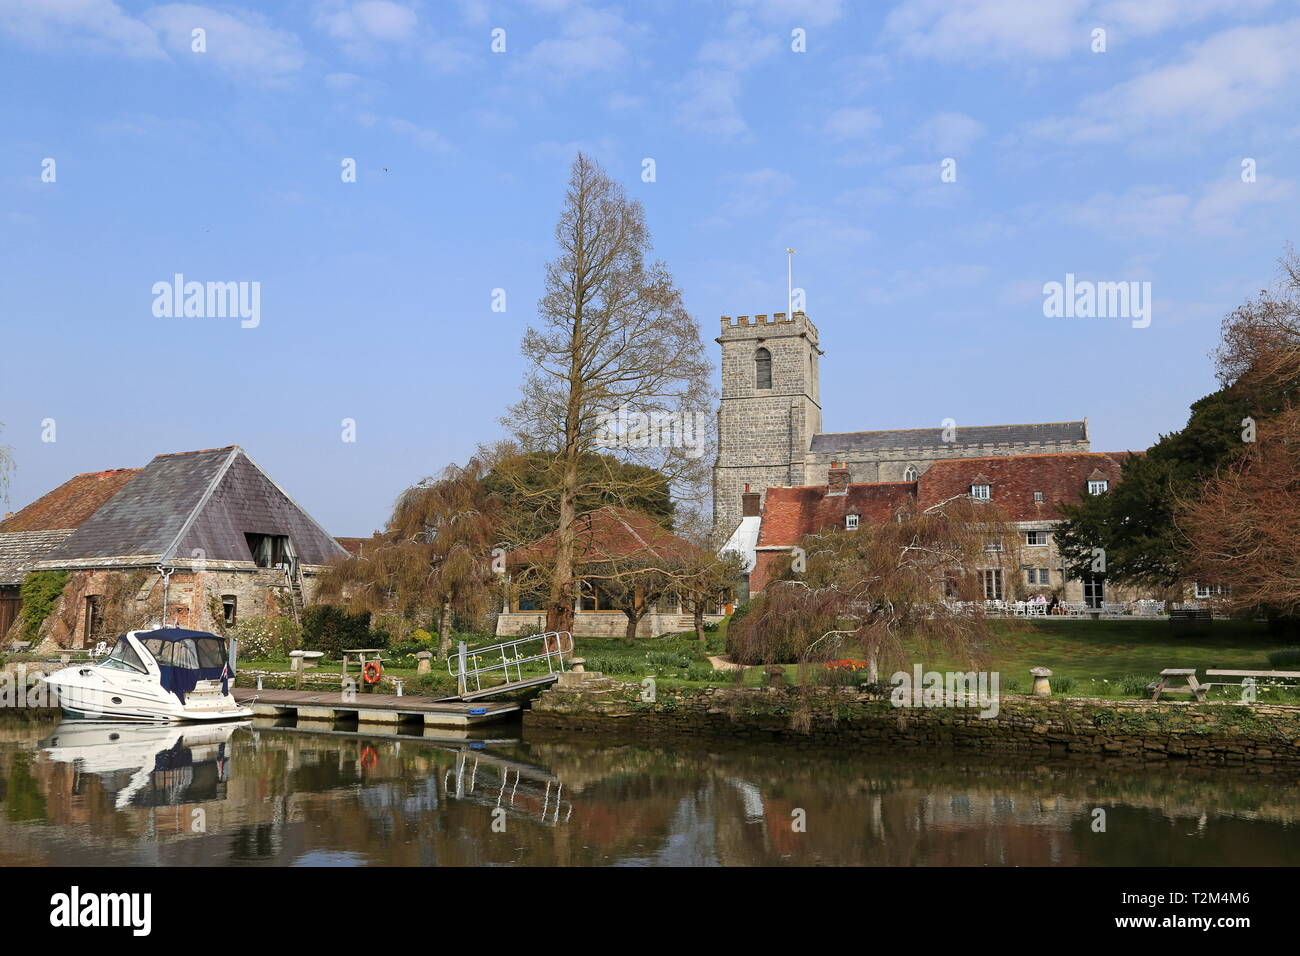 Priory Hotel with Priory Church of Lady St Mary behind, Wareham, Isle of Purbeck, Dorset, England, Great Britain, United Kingdom, UK, Europe - Stock Image